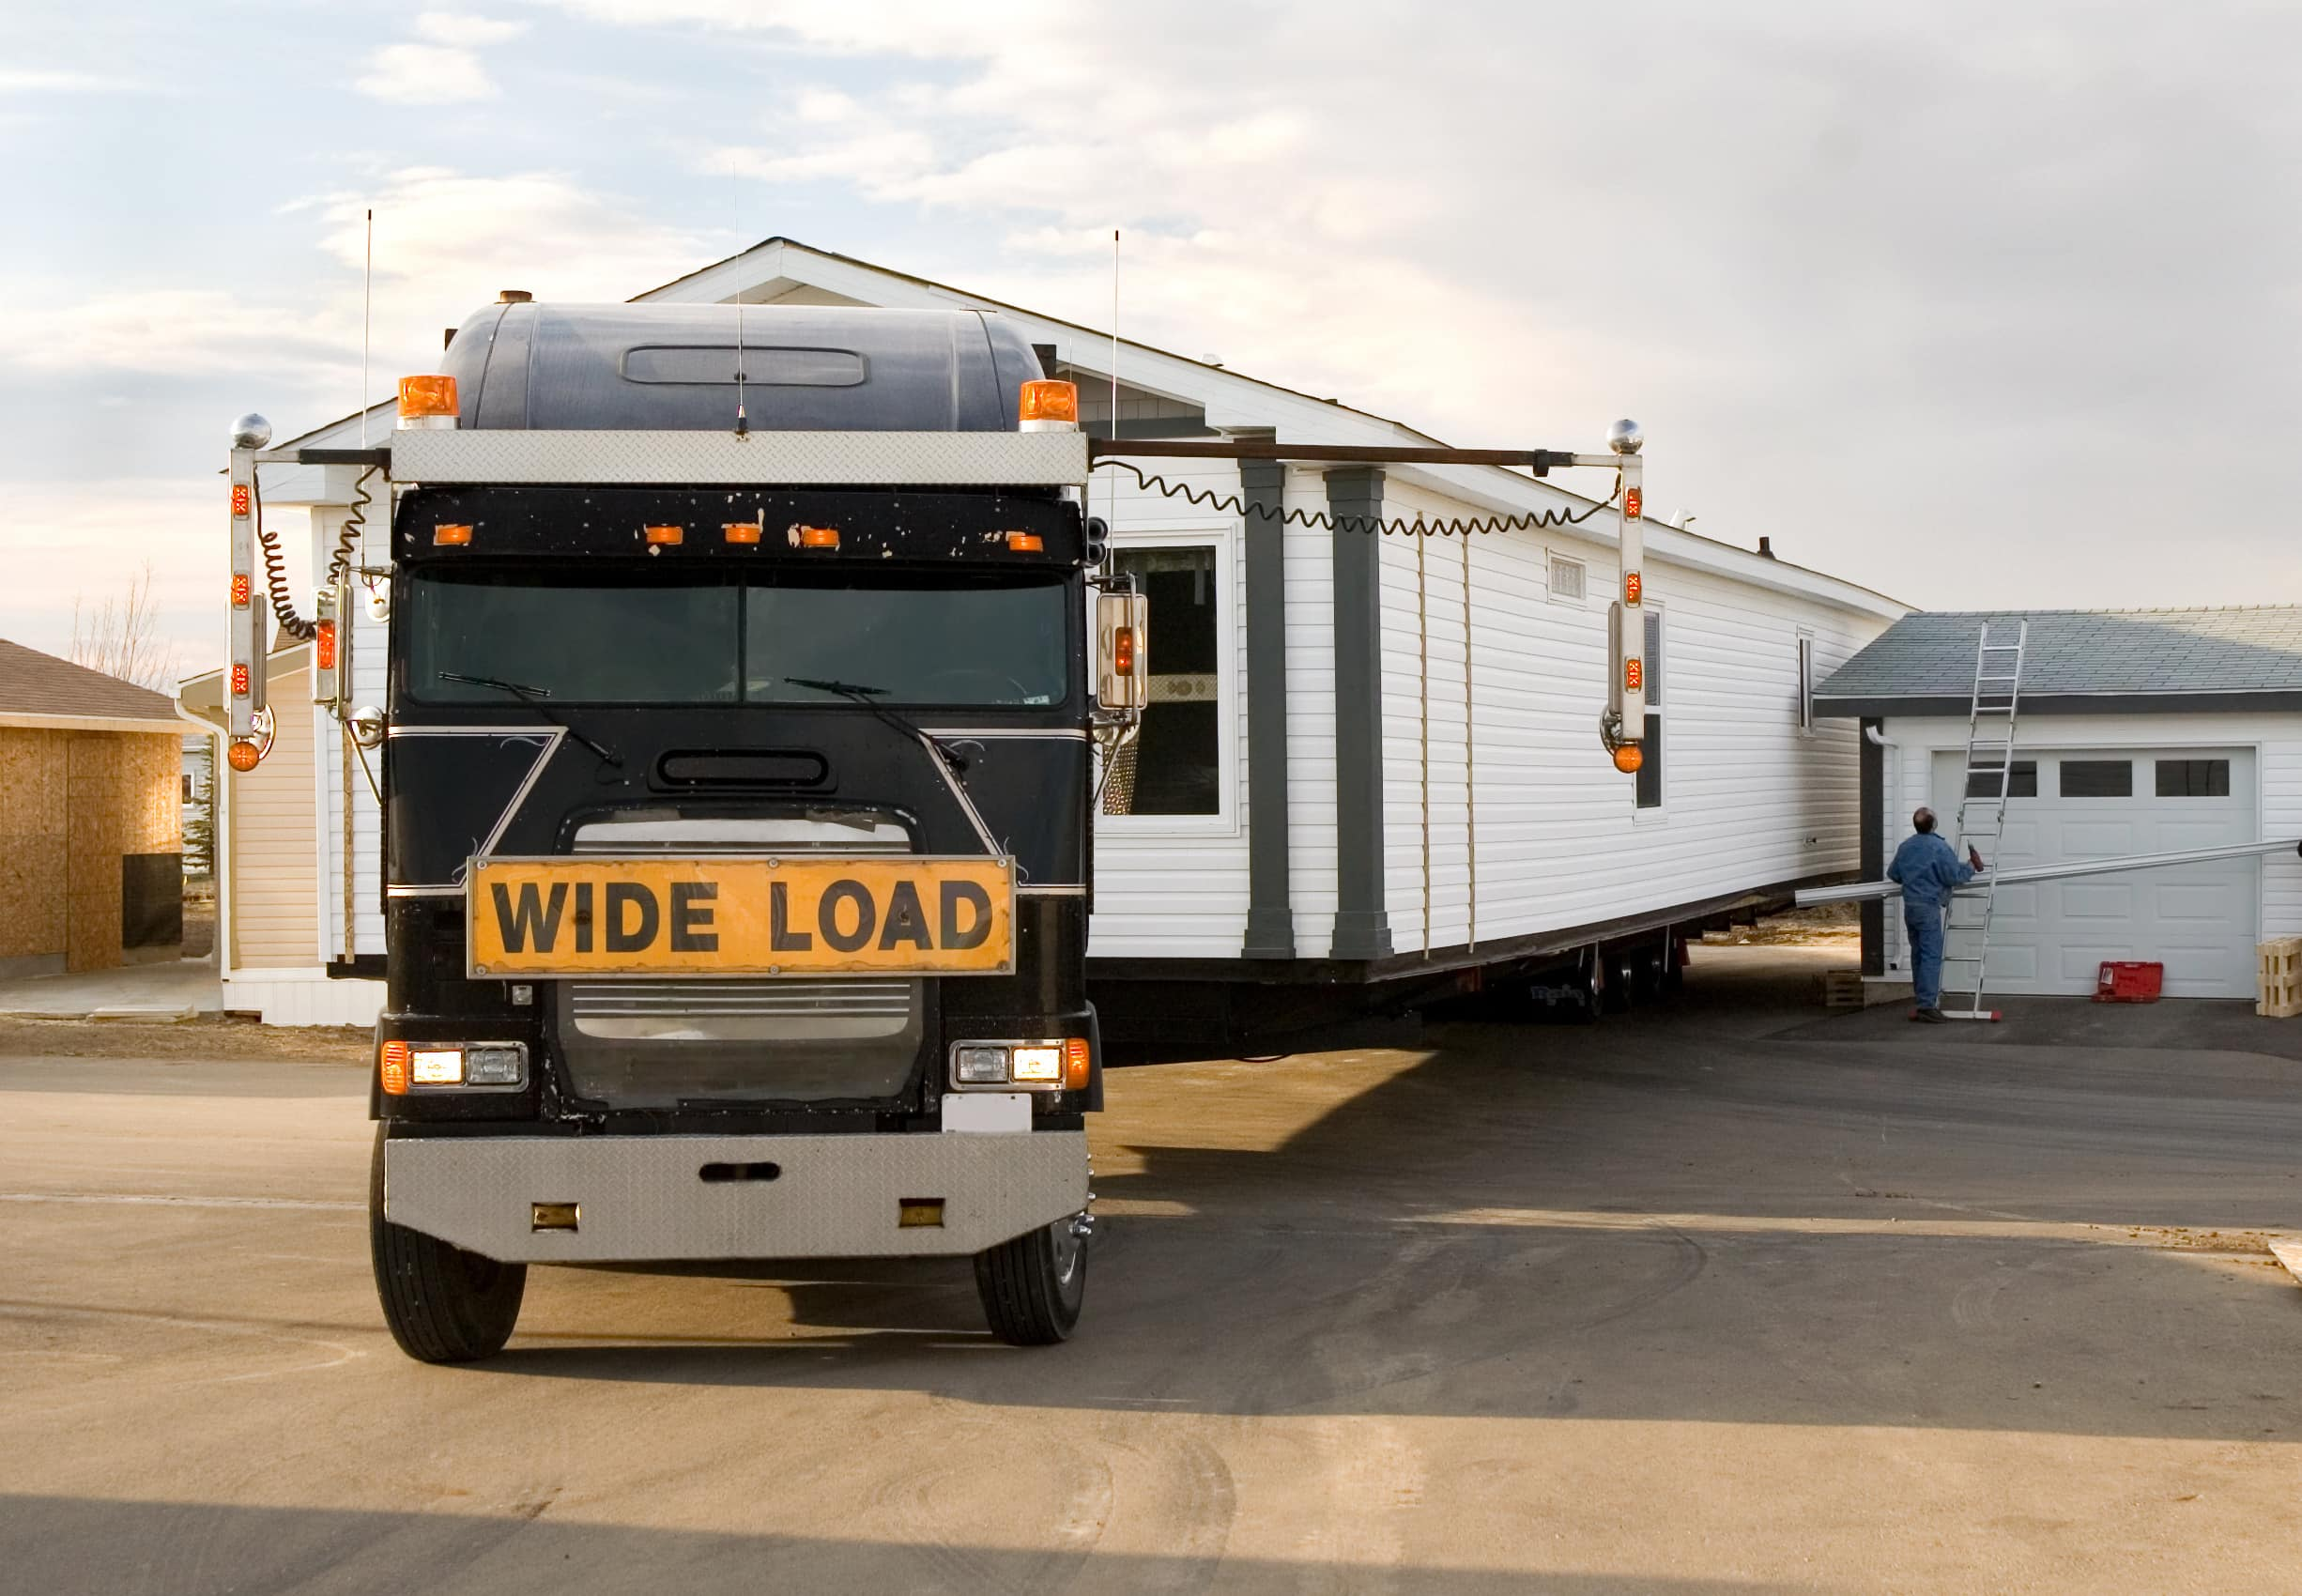 Semi-Truck backing in a mobile home.